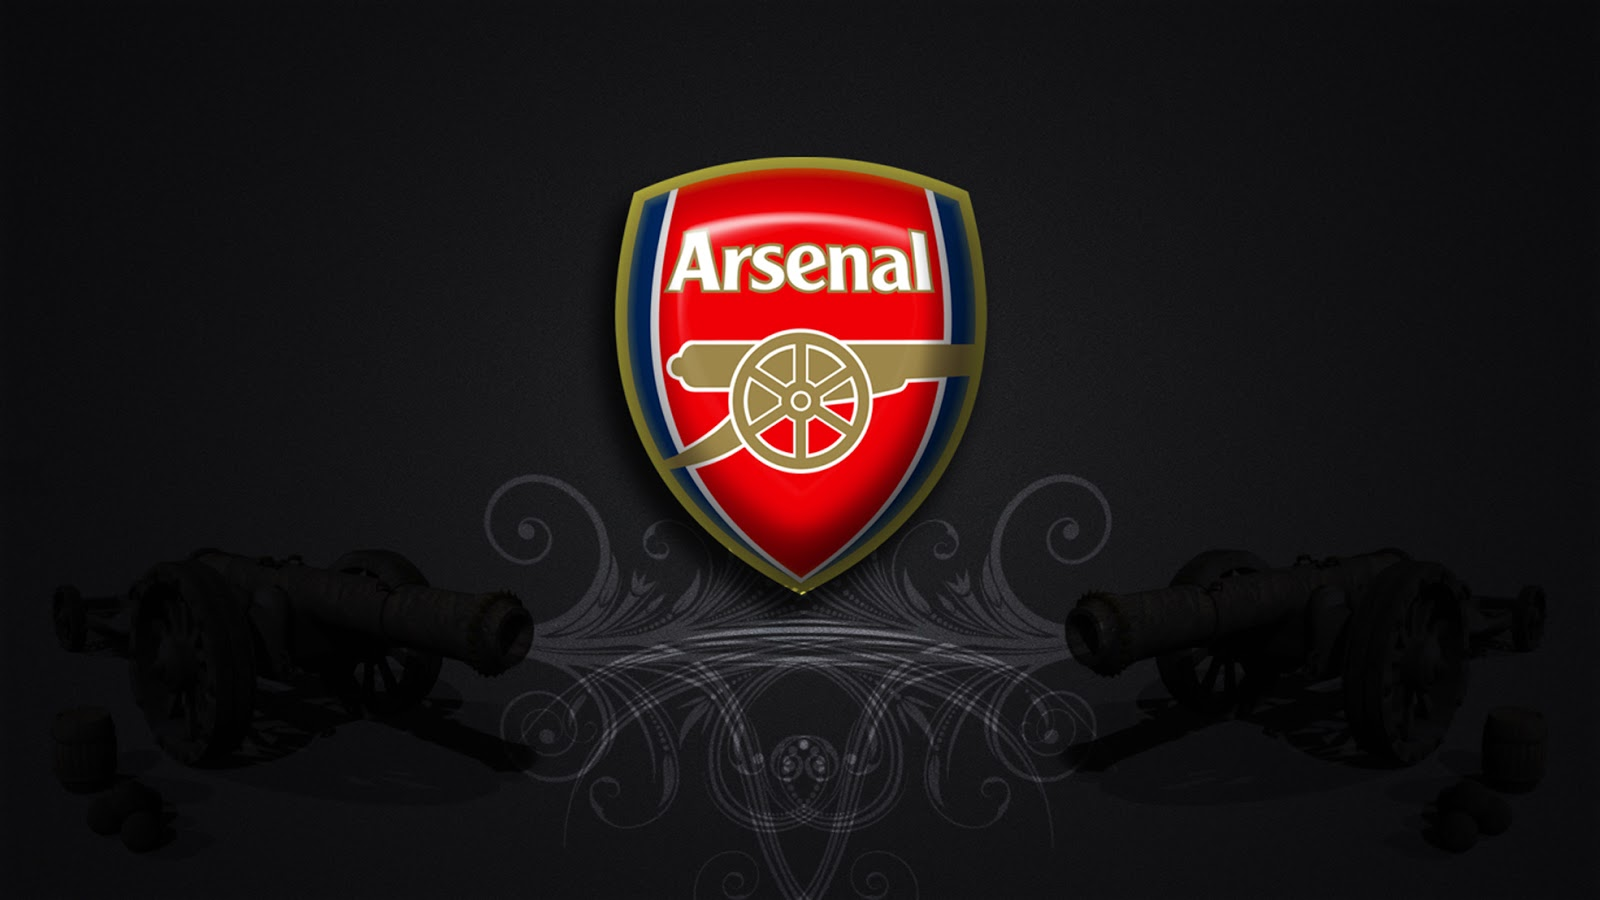 ... Arsenal-FC-Logos-HD-Wallpaper ...